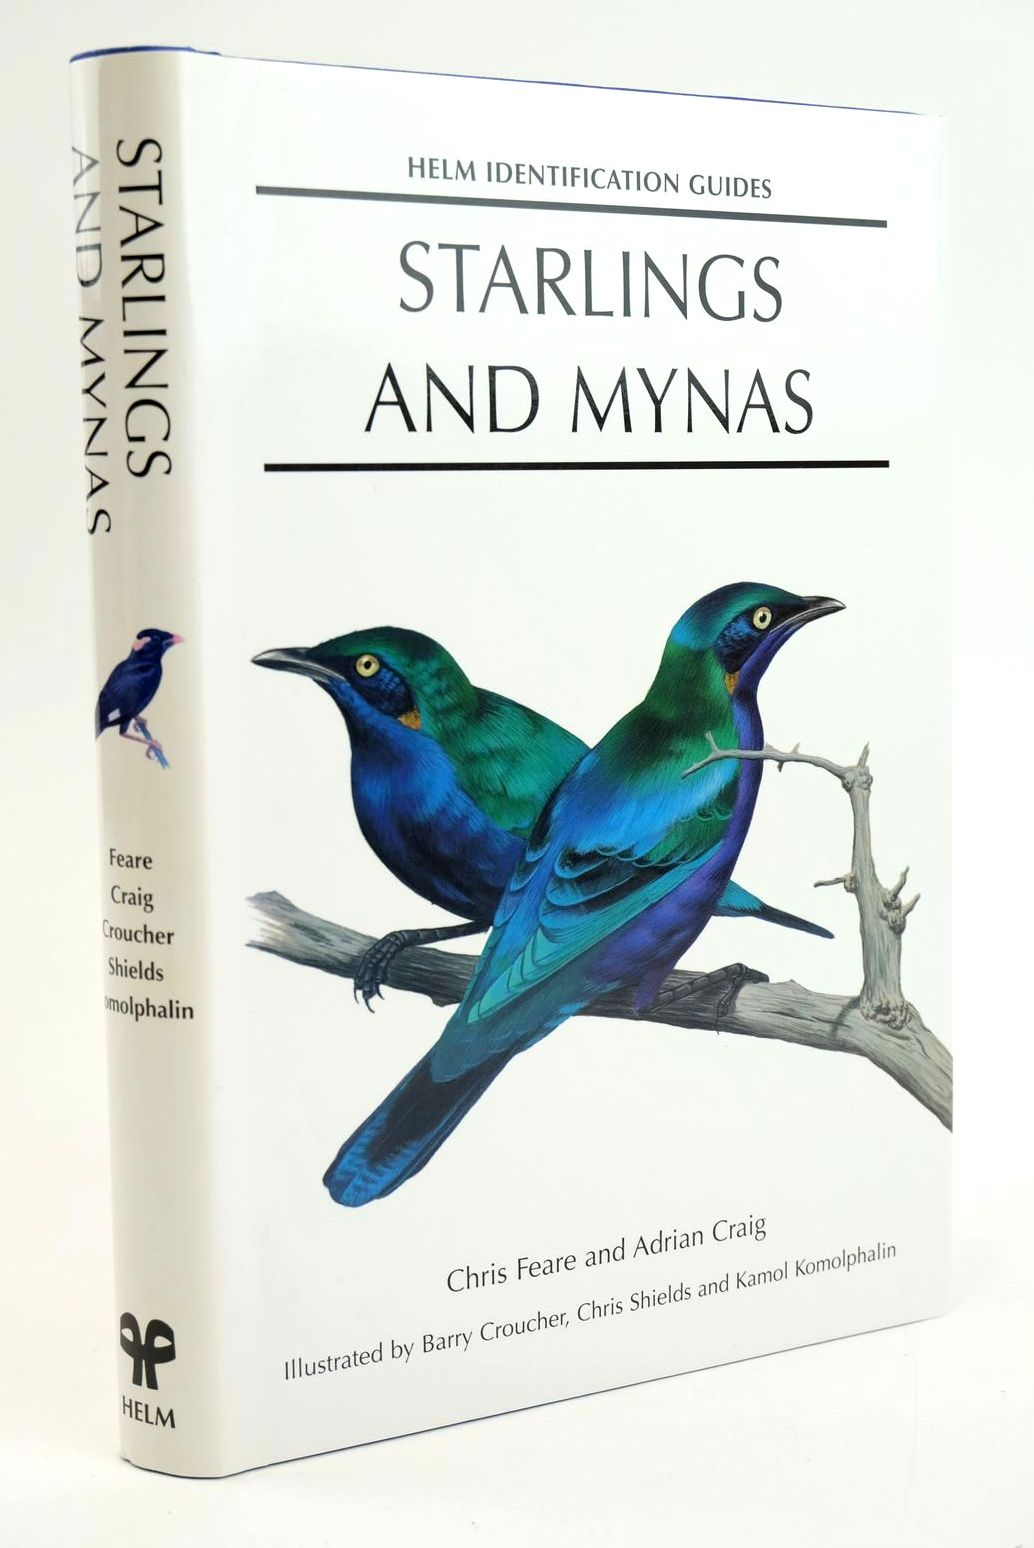 Photo of STARLINGS AND MYNAS (HELM IDENTIFICATION GUIIDES) written by Feare, Christopher J. Craig, Adrian illustrated by Croucher, Barry Shields, Chris Komolphalin, Kamol published by Christopher Helm (STOCK CODE: 1319291)  for sale by Stella & Rose's Books